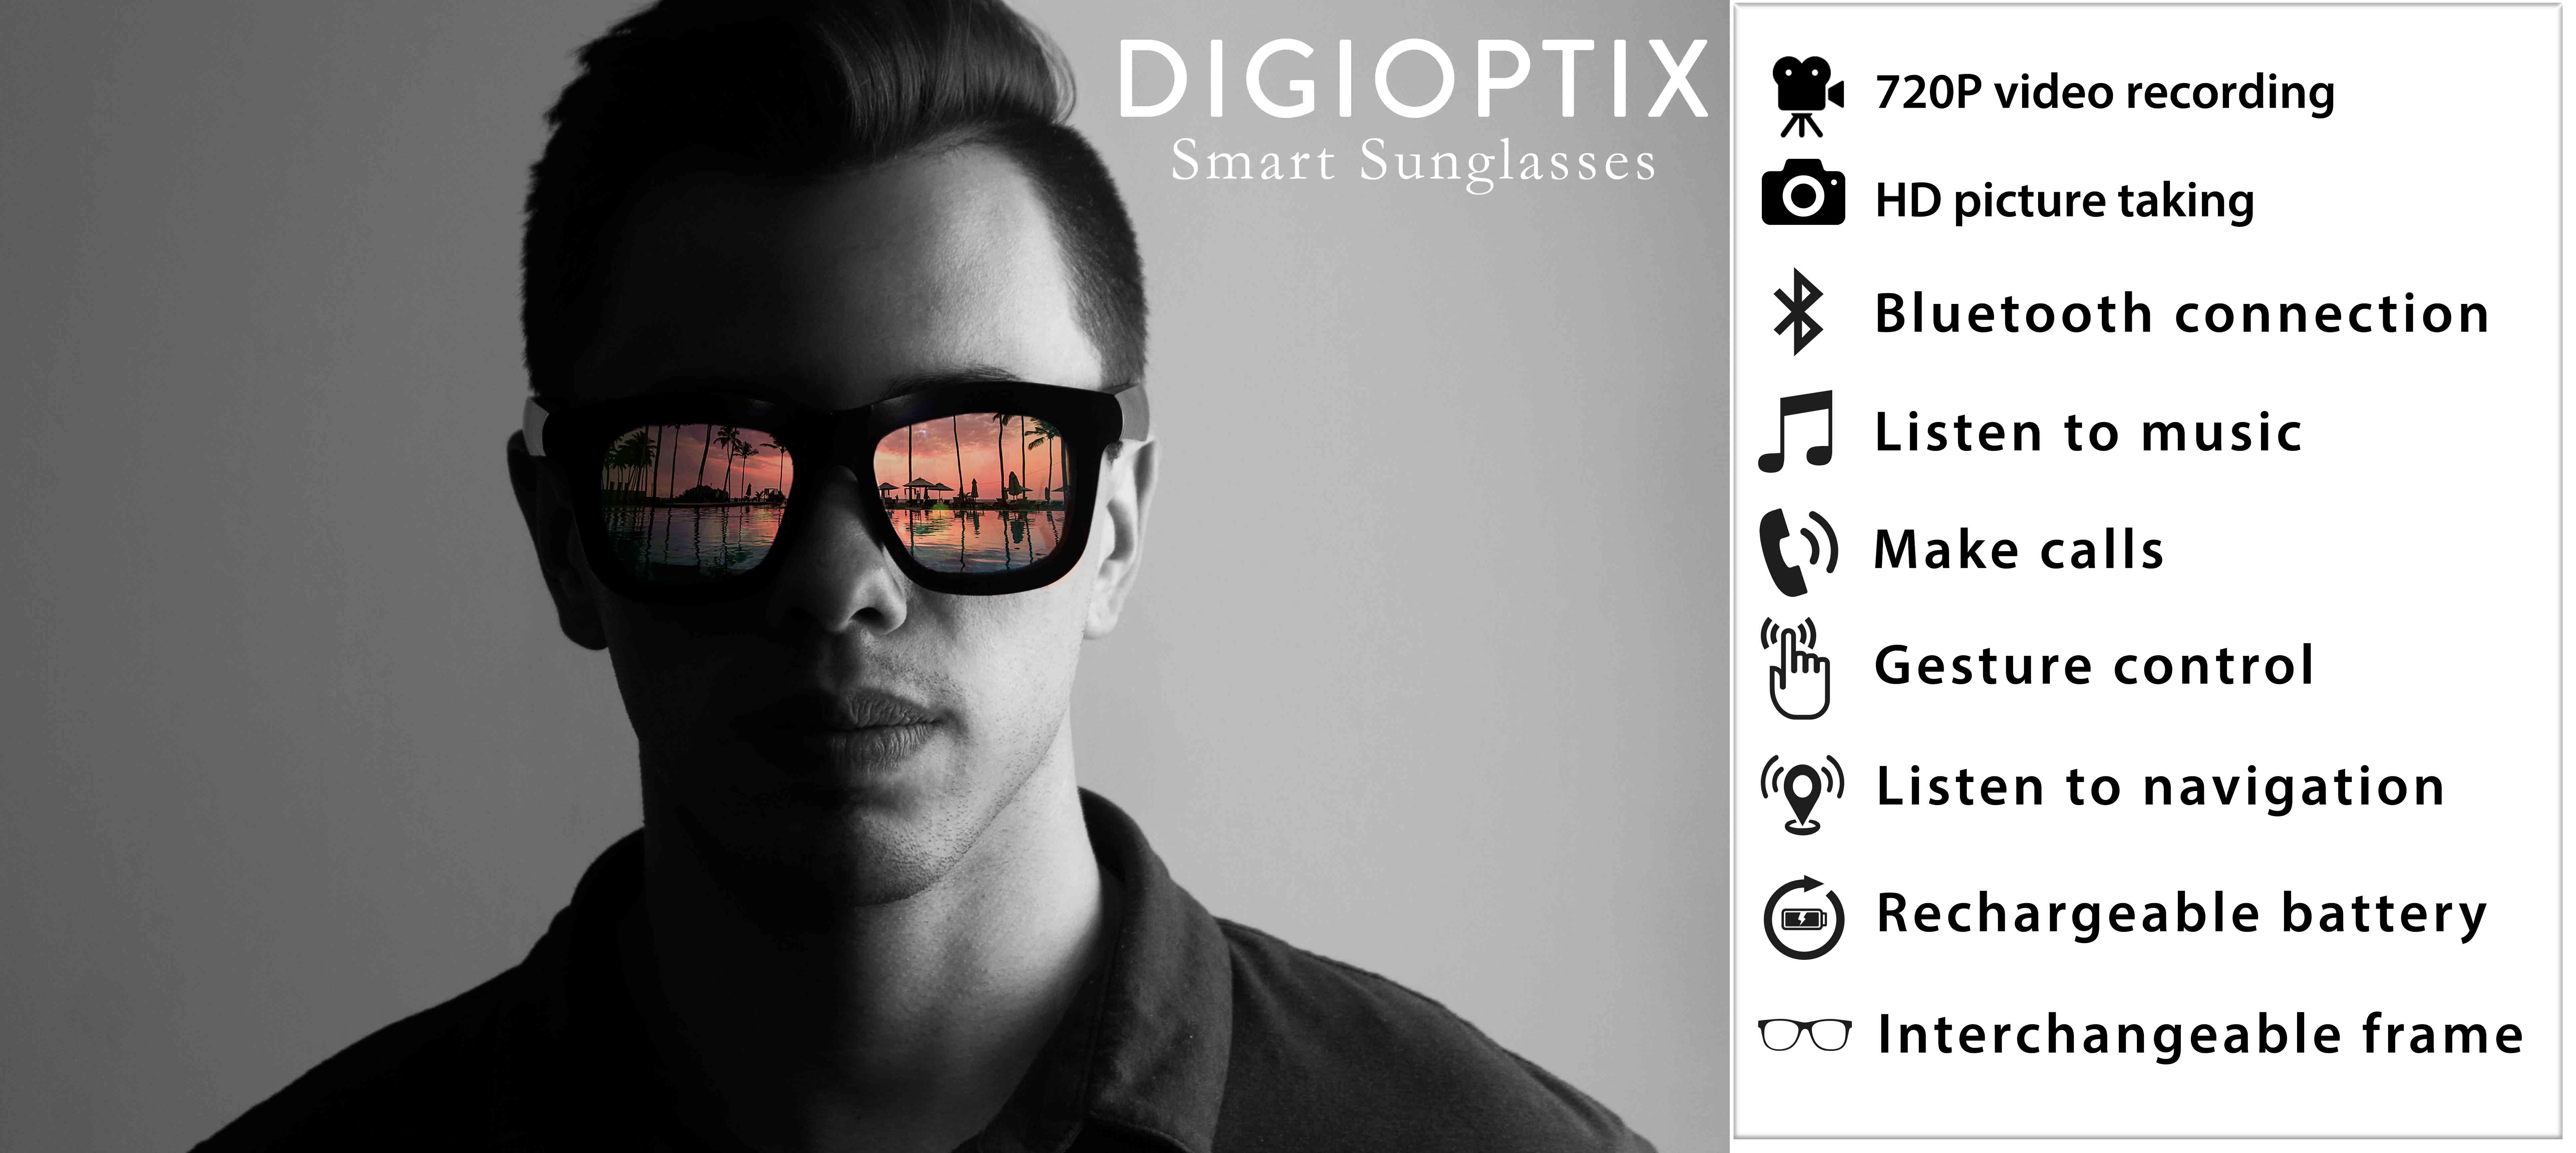 720 P video recording, HD picture Taking, Bluetooth Connection, Listen to music, make calls, gesture control, listen to navigation, rechargeable battery, interchangeable frame. DigiOptix Smart Glasses. Best camera glasses